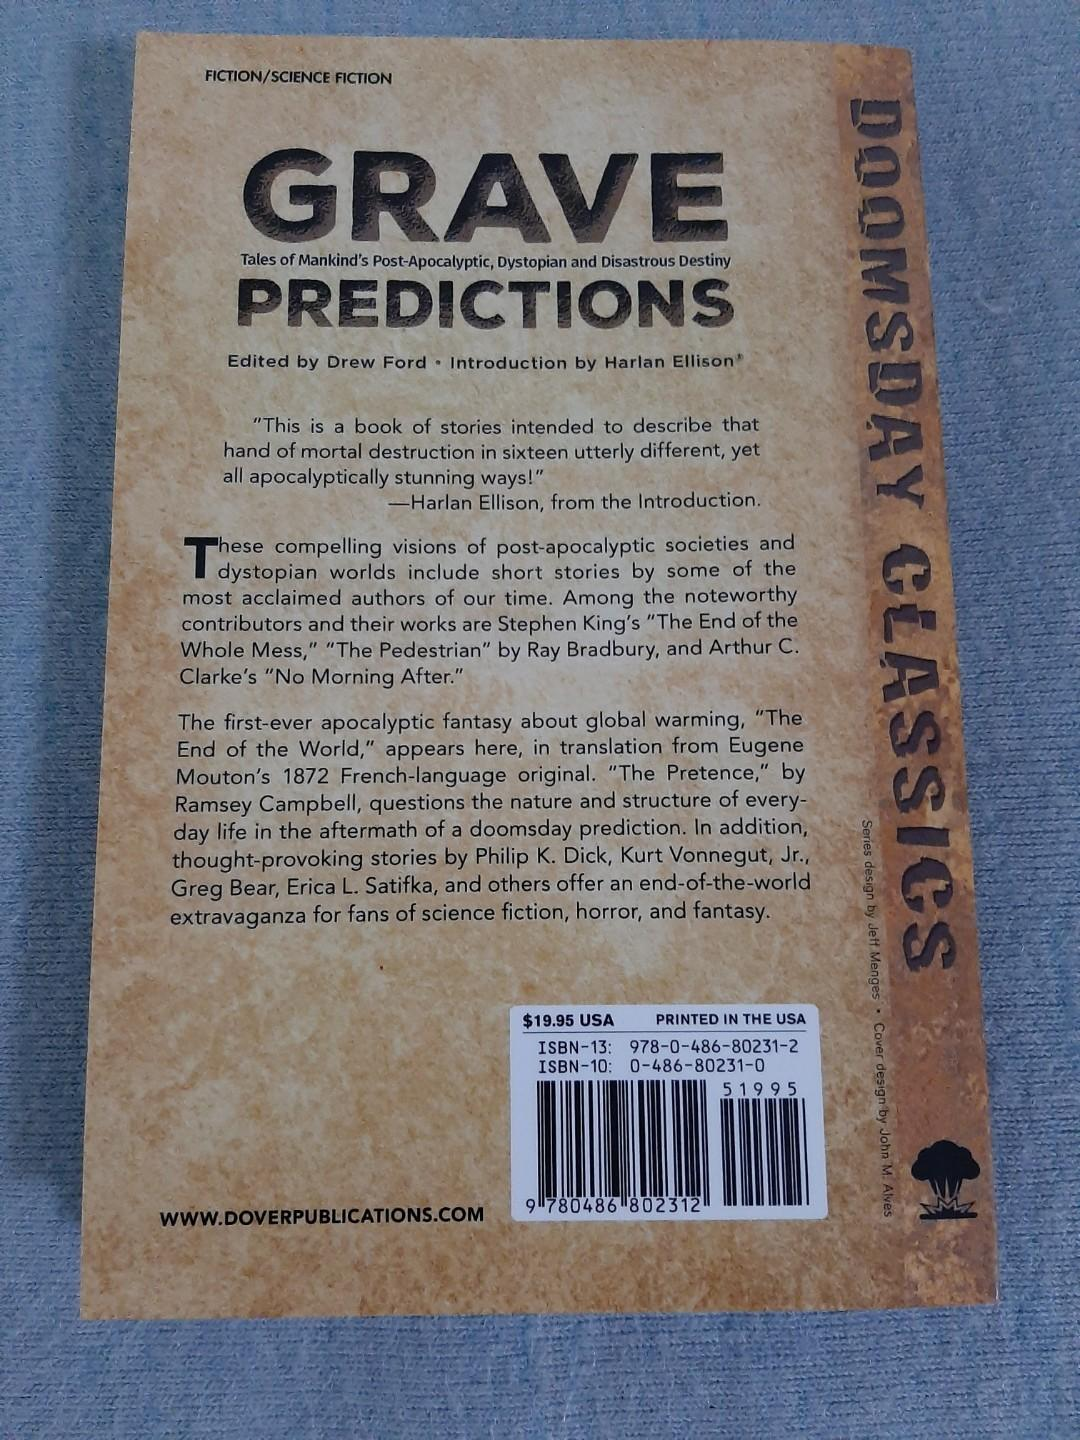 BRAND NEW: Grave Predictions: Tales of Mankind's Post-Apocalyptic, Dystopian and Disastrous Destiny